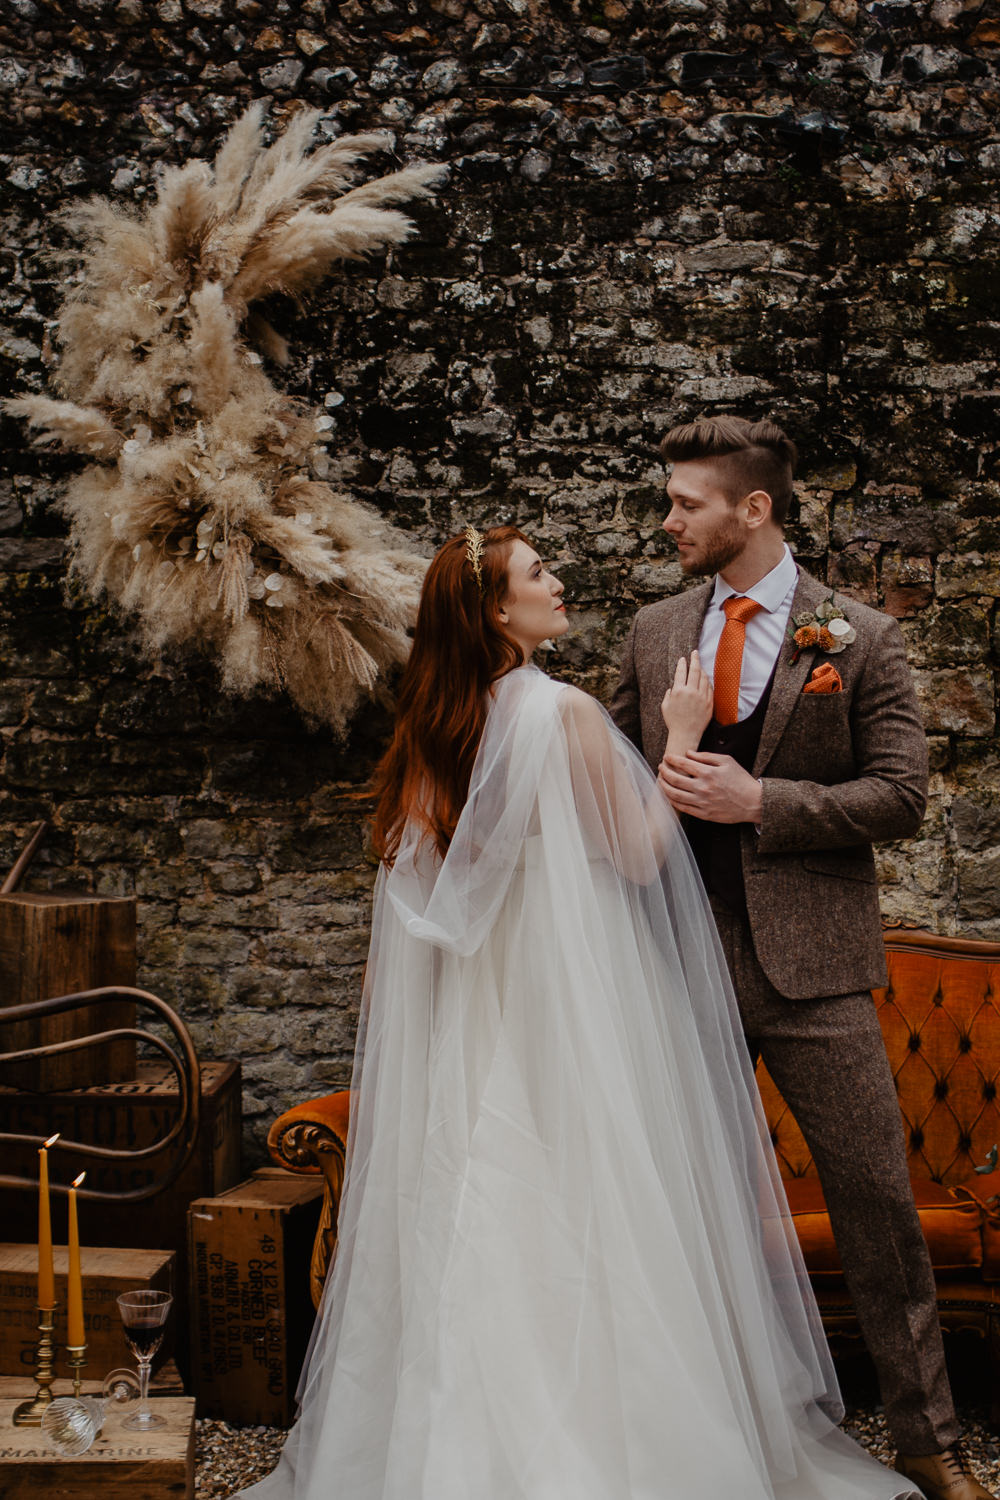 Elopement Wedding Ideas Oilvejoy Photography Crescent Moon Pampas Grass Installation Backdrop Flowers Floral Orange Sofa Vintage